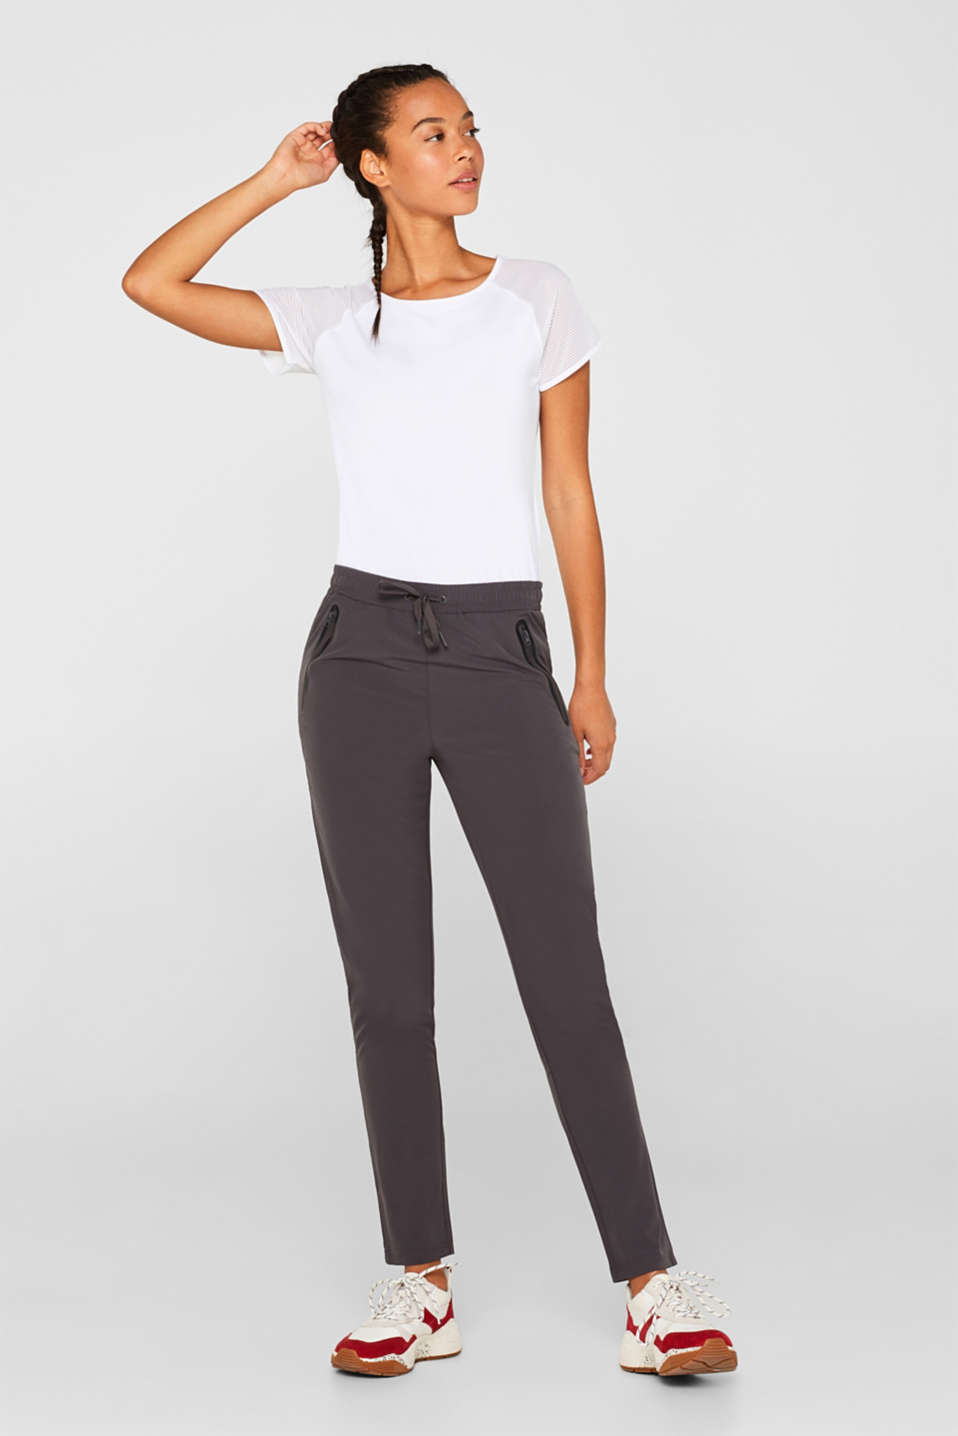 Esprit - Woven trousers with piping, E-DRY